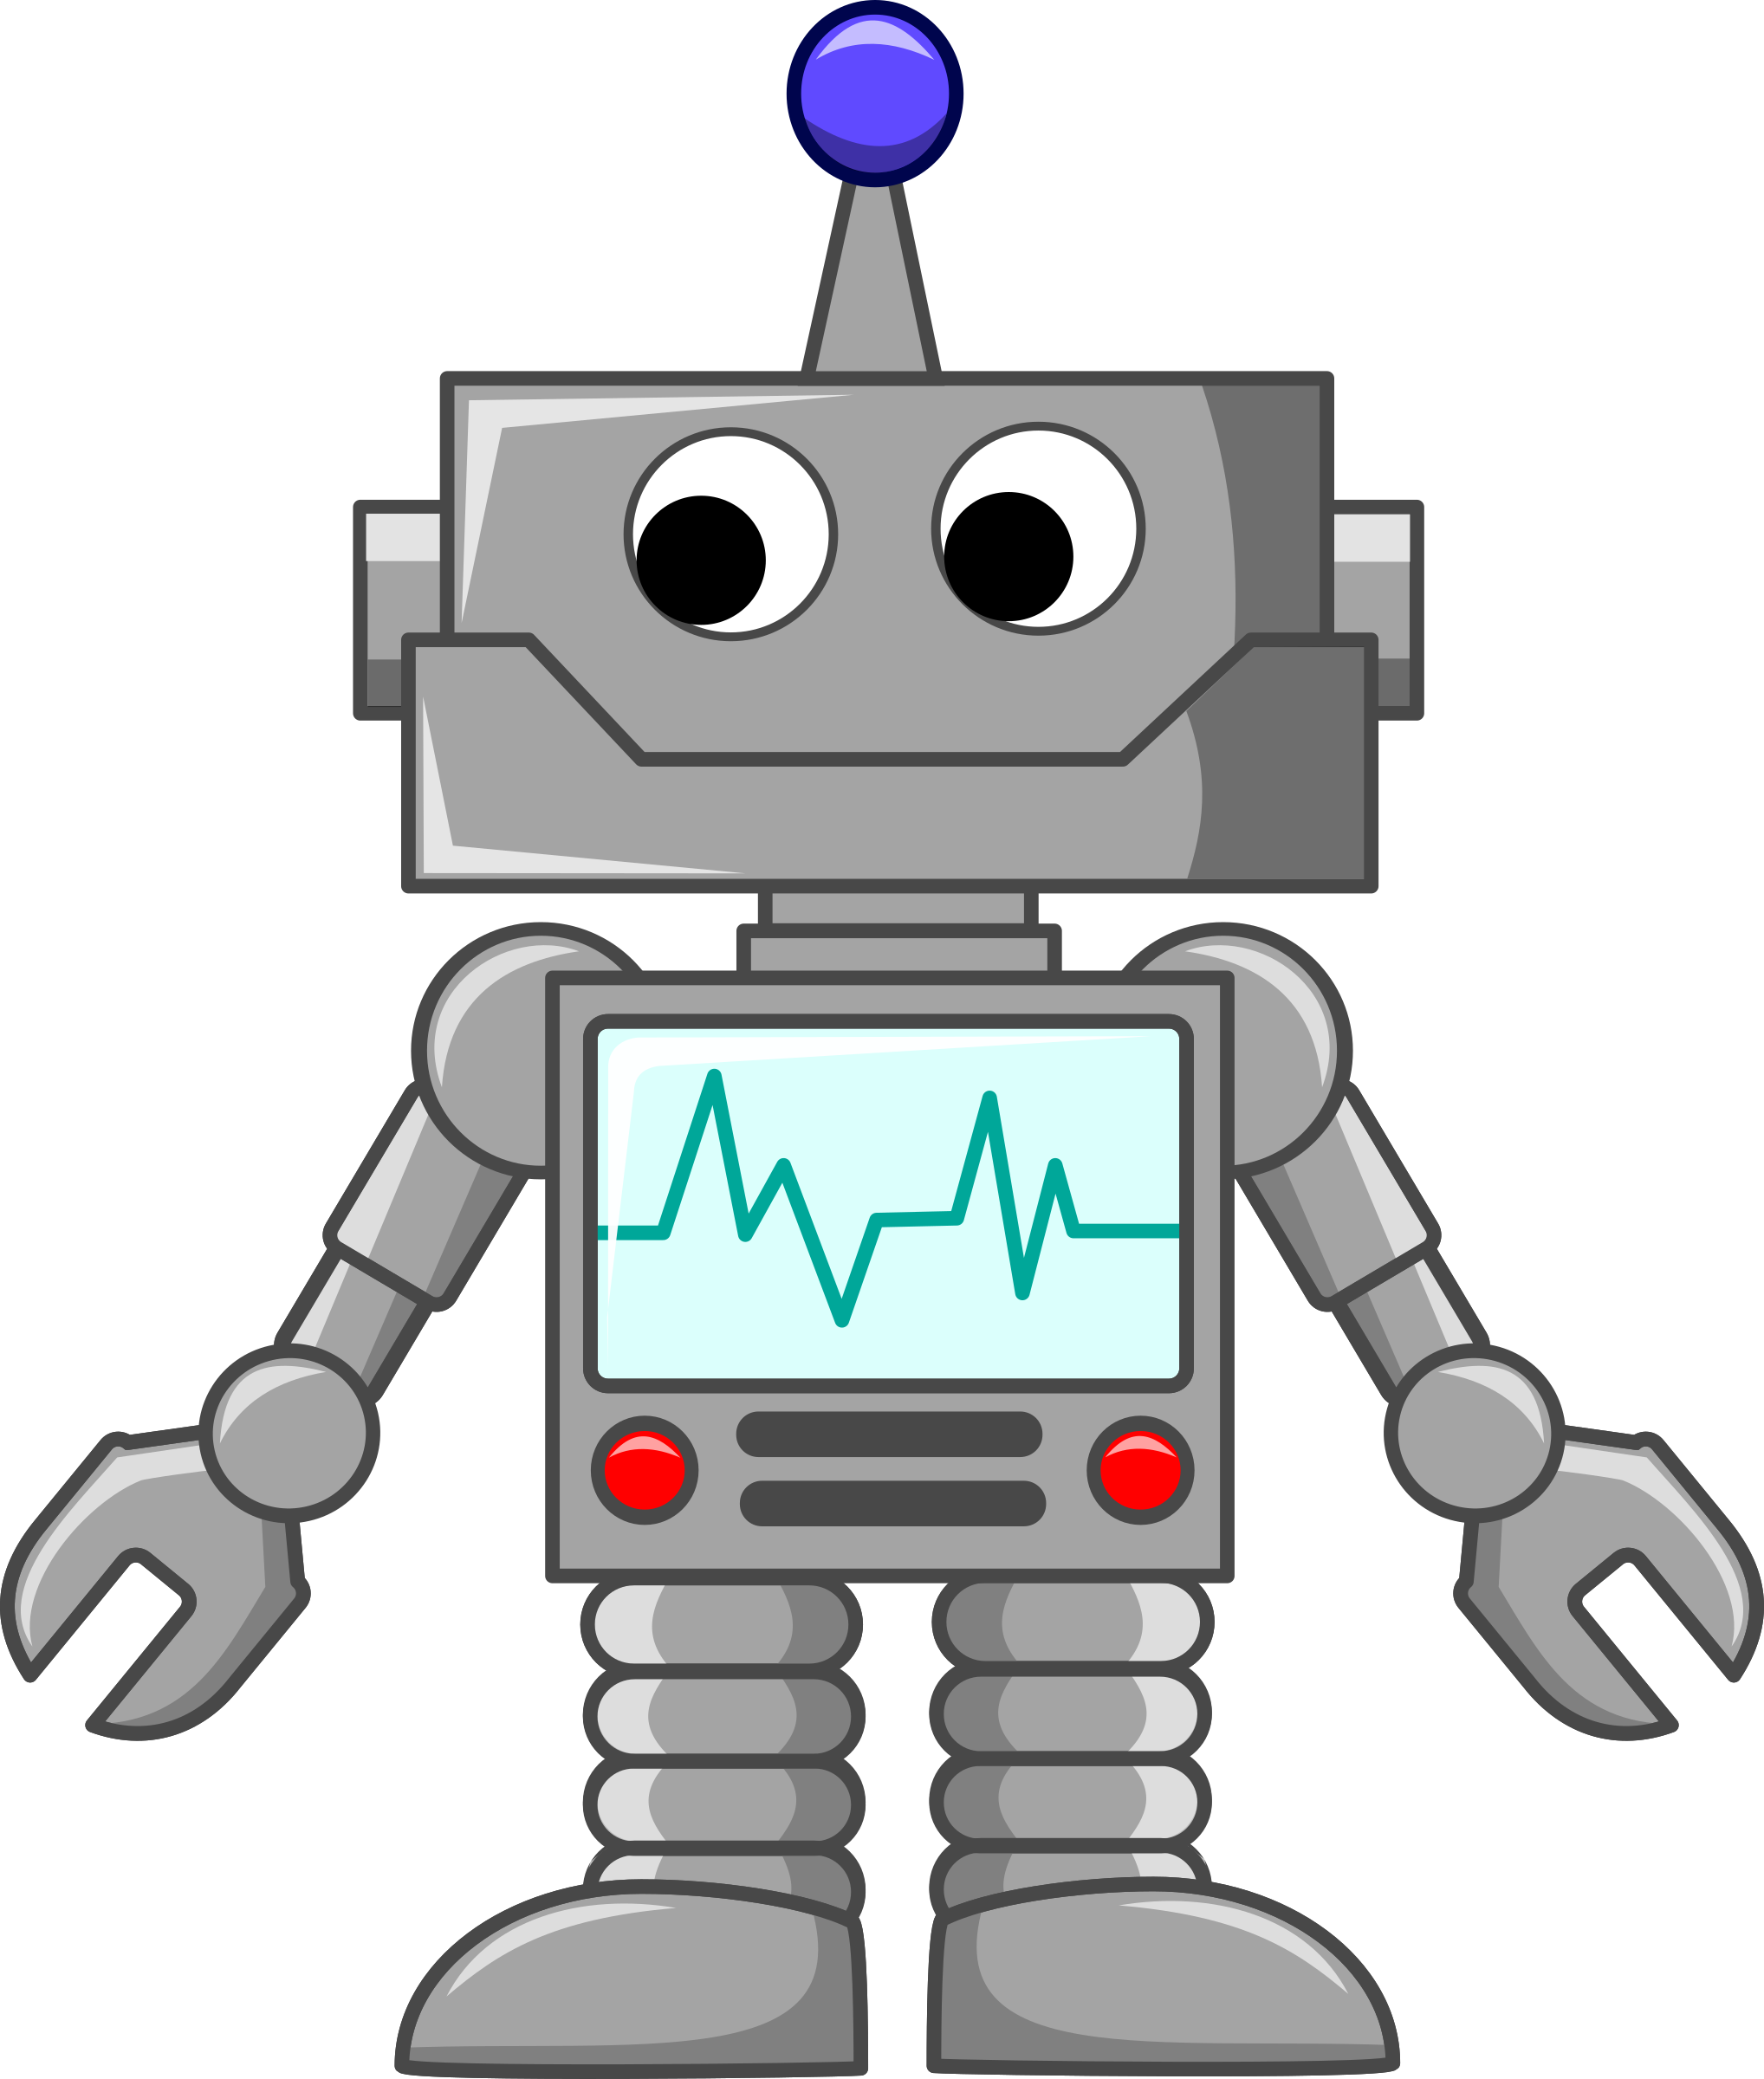 cartoon robot (With images) | Robot cartoon, Robot clipart, Robot ...